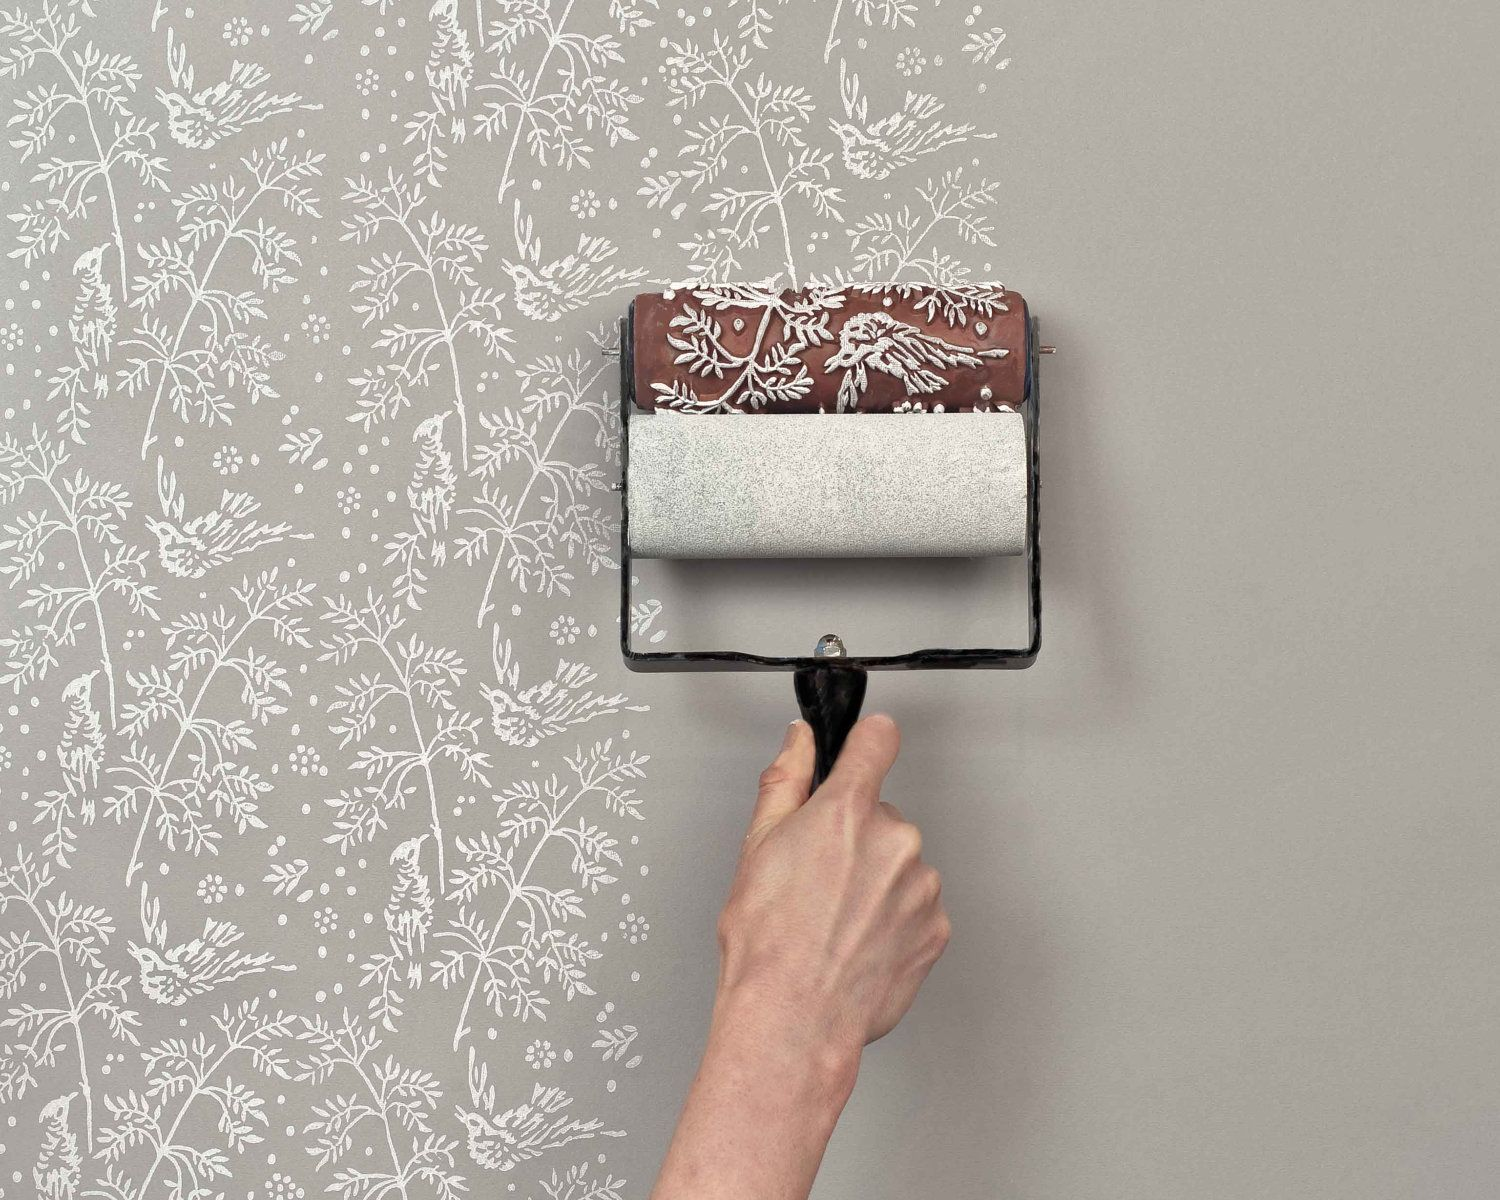 Wall Applicator From The Painted House To Use With Our Patterned Paint Rollers Patterned Paint Rollers Classic Wallpaper Paint Roller